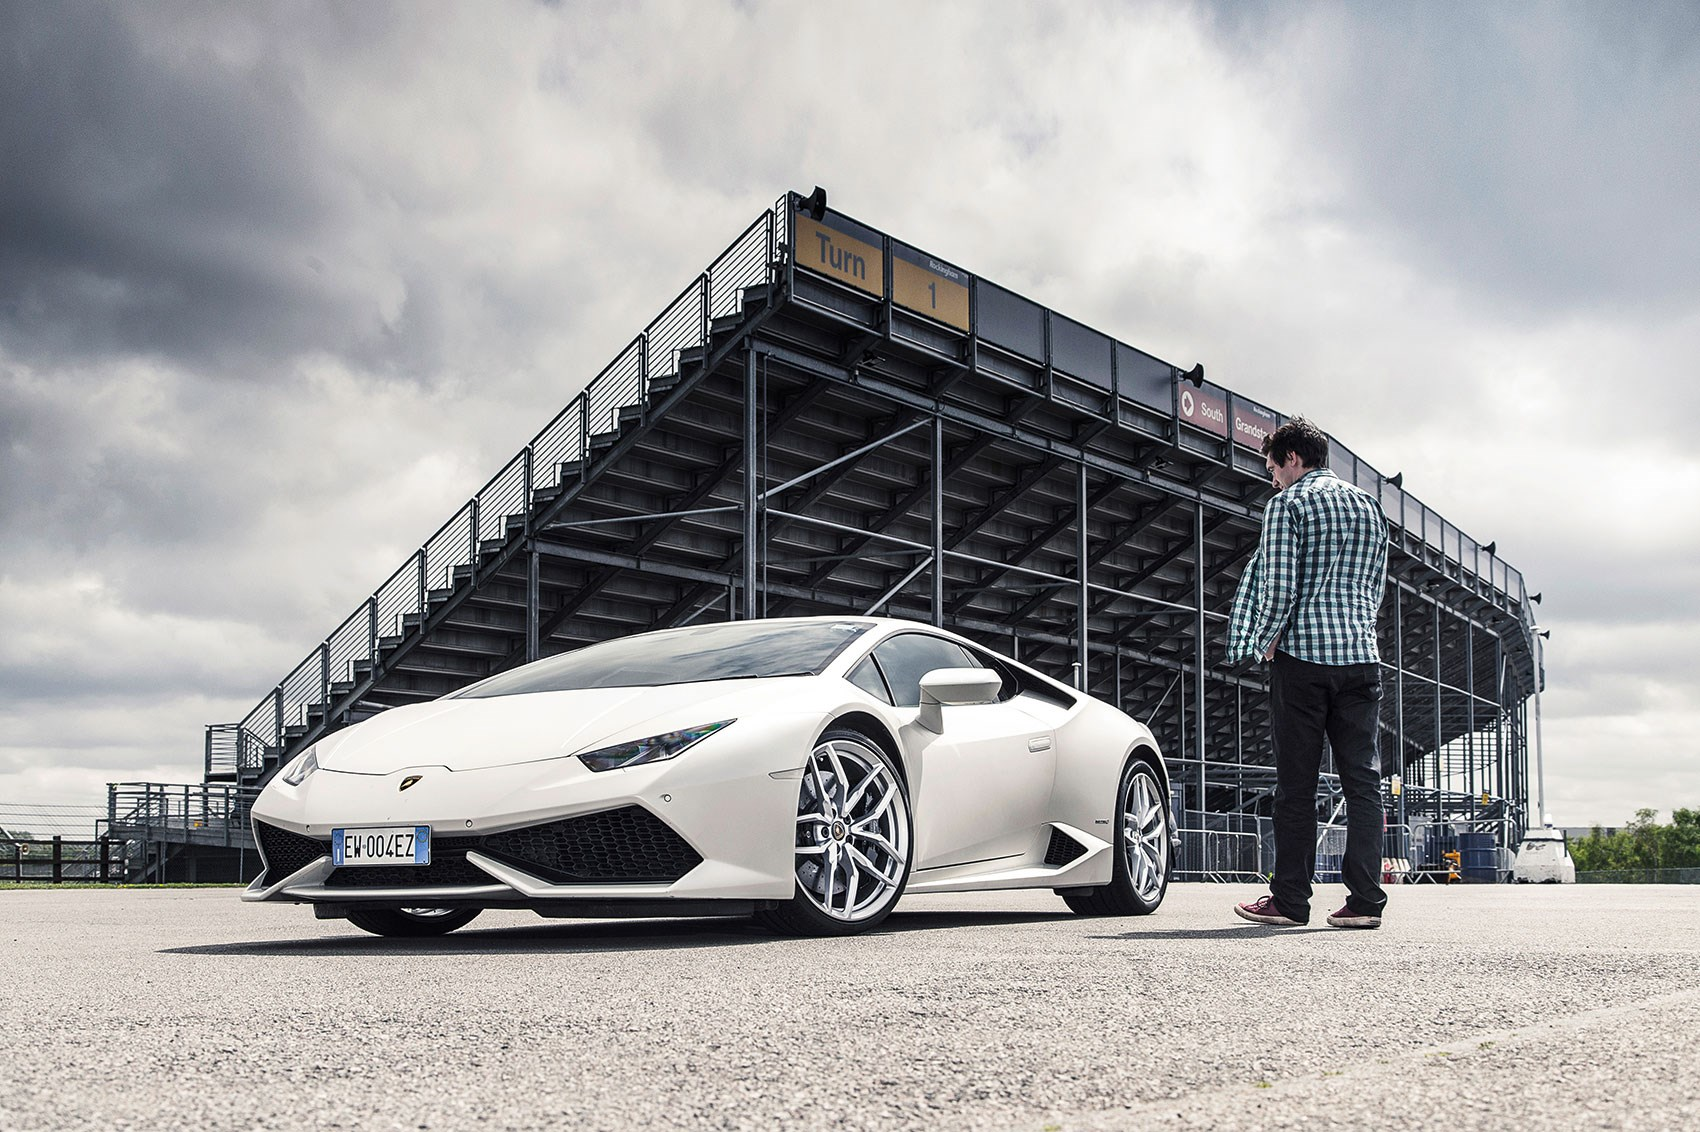 Lamborghini Huracan Lp610 4 Long Term Test Review 2015